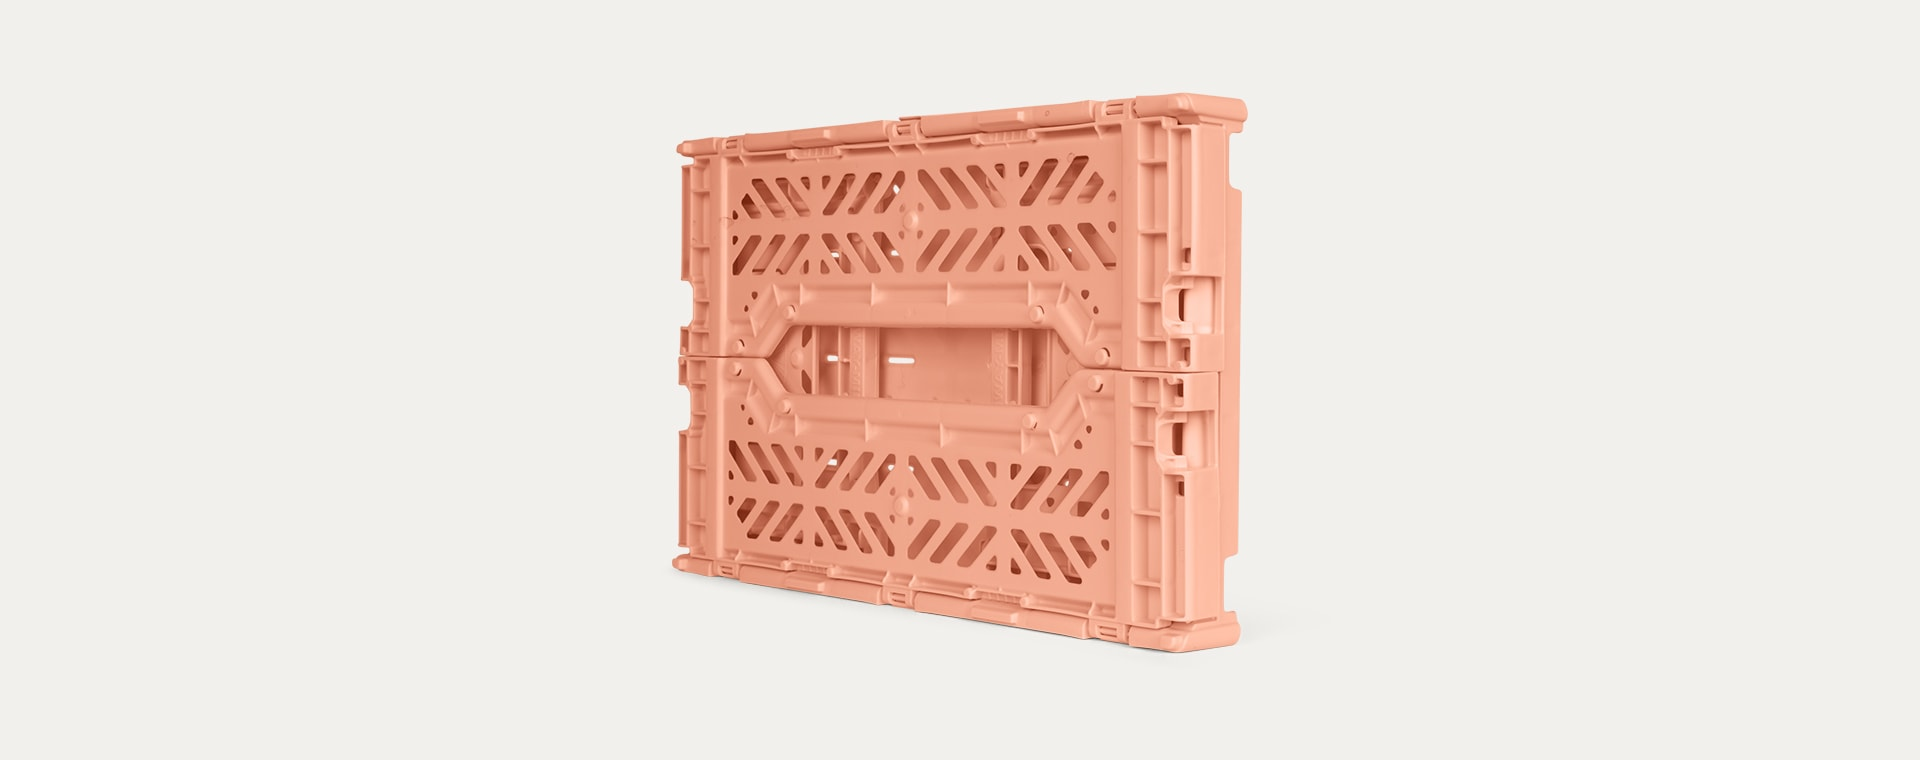 Salmon Aykasa Mini Crate